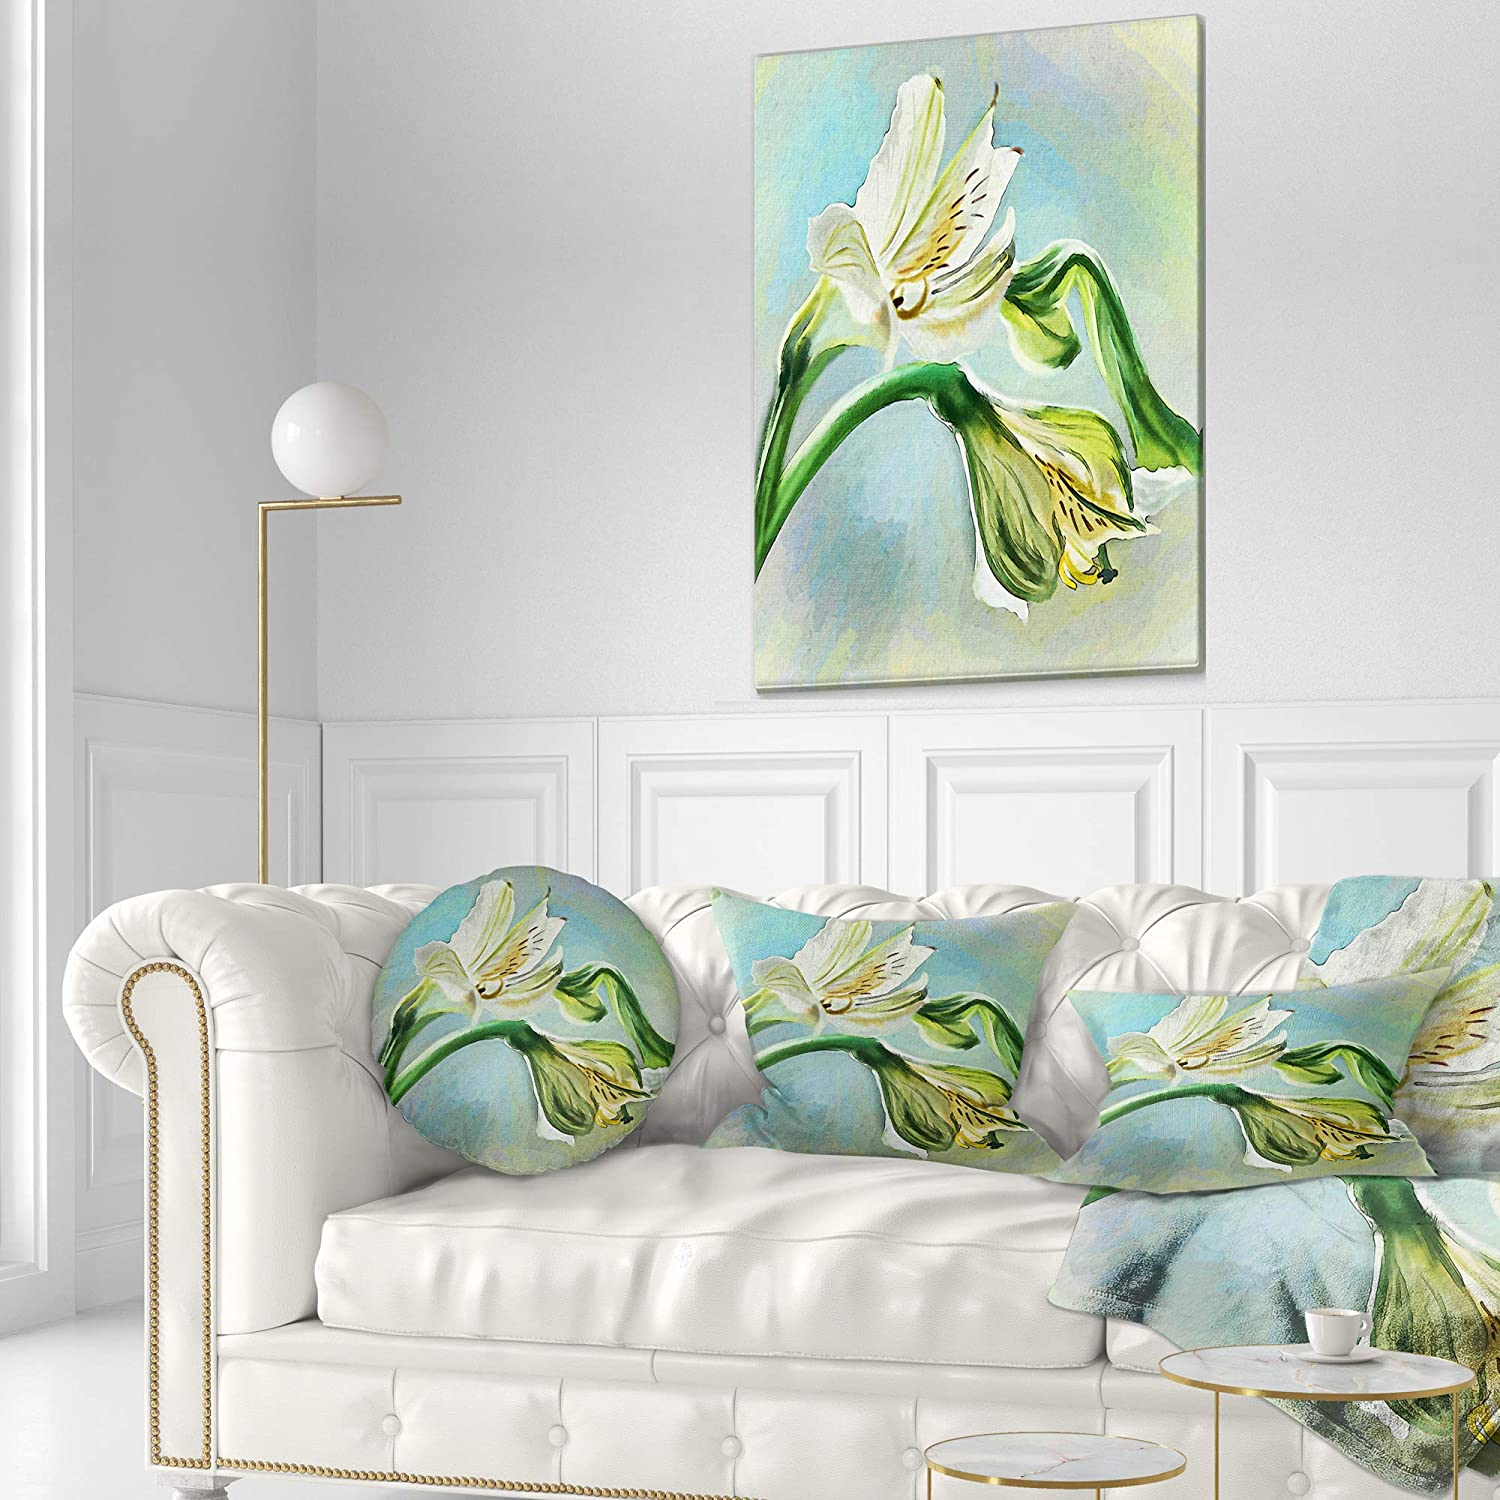 Sofa Throw Pillow 12 in Designart CU13490-12-20 White Lily Flower Sketch Watercolor Floral Lumbar Cushion Cover for Living Room in x 20 in